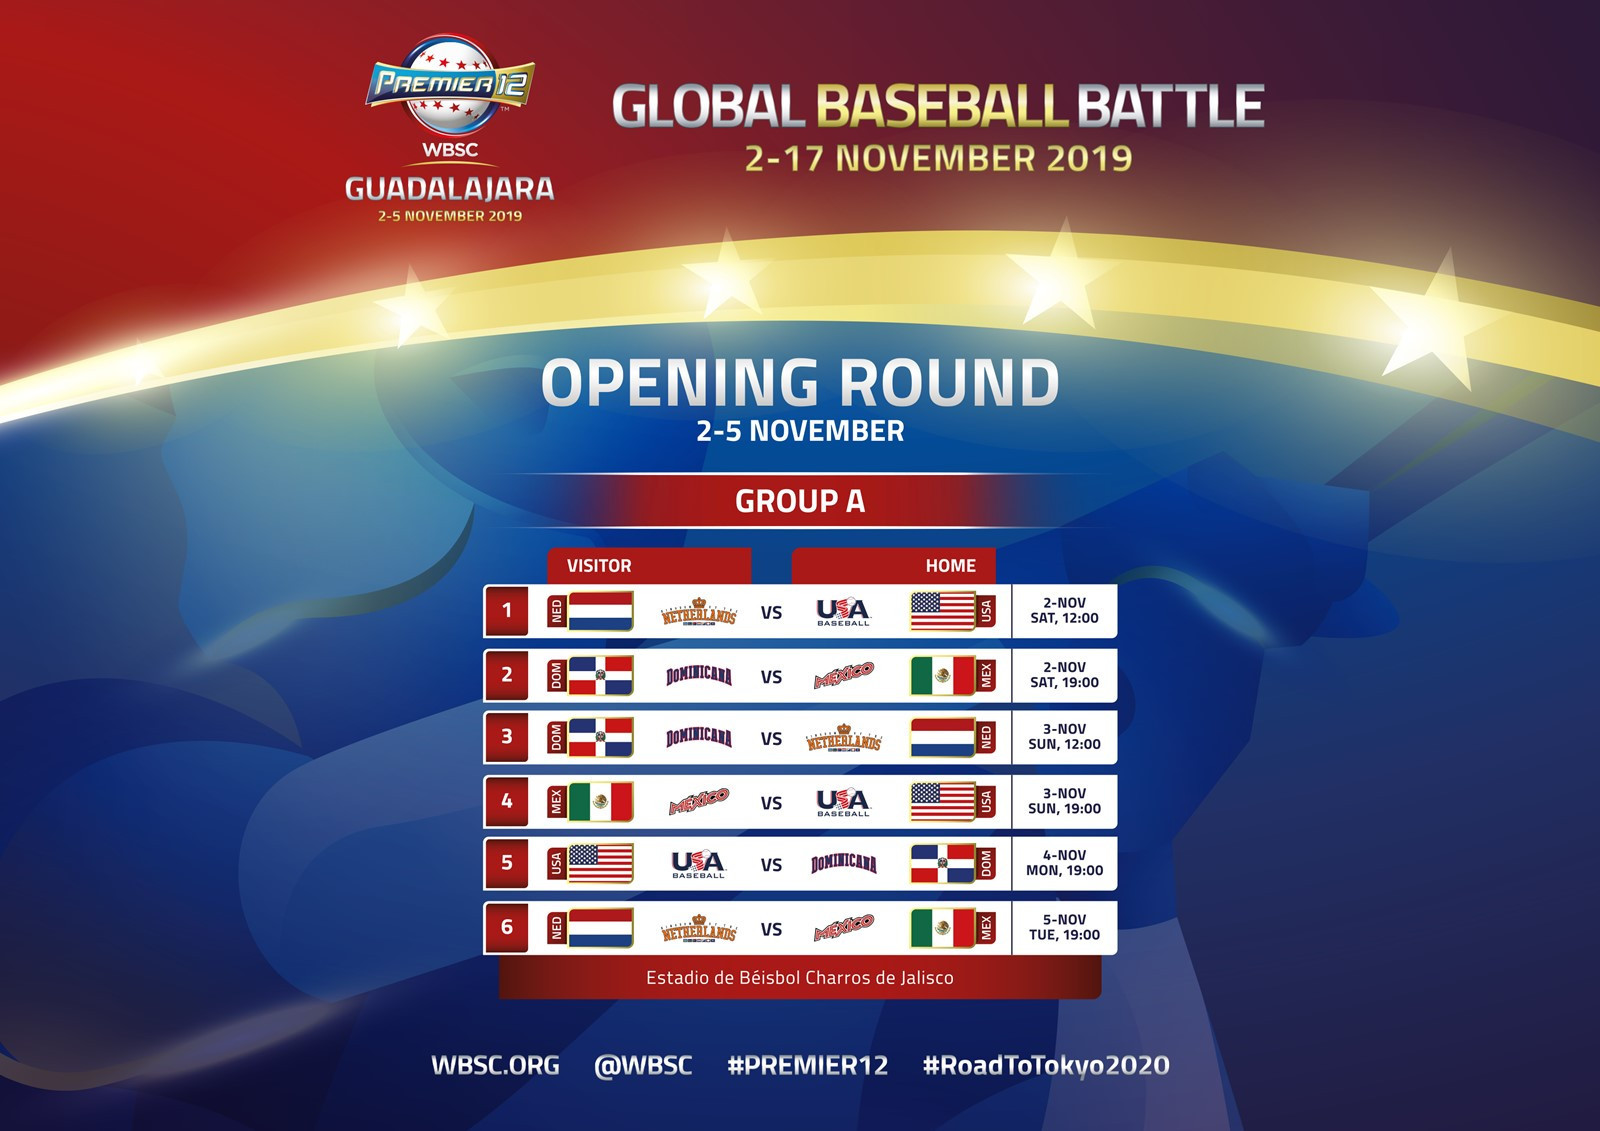 WBSC announce Group A and B schedules for WBSC Premier12